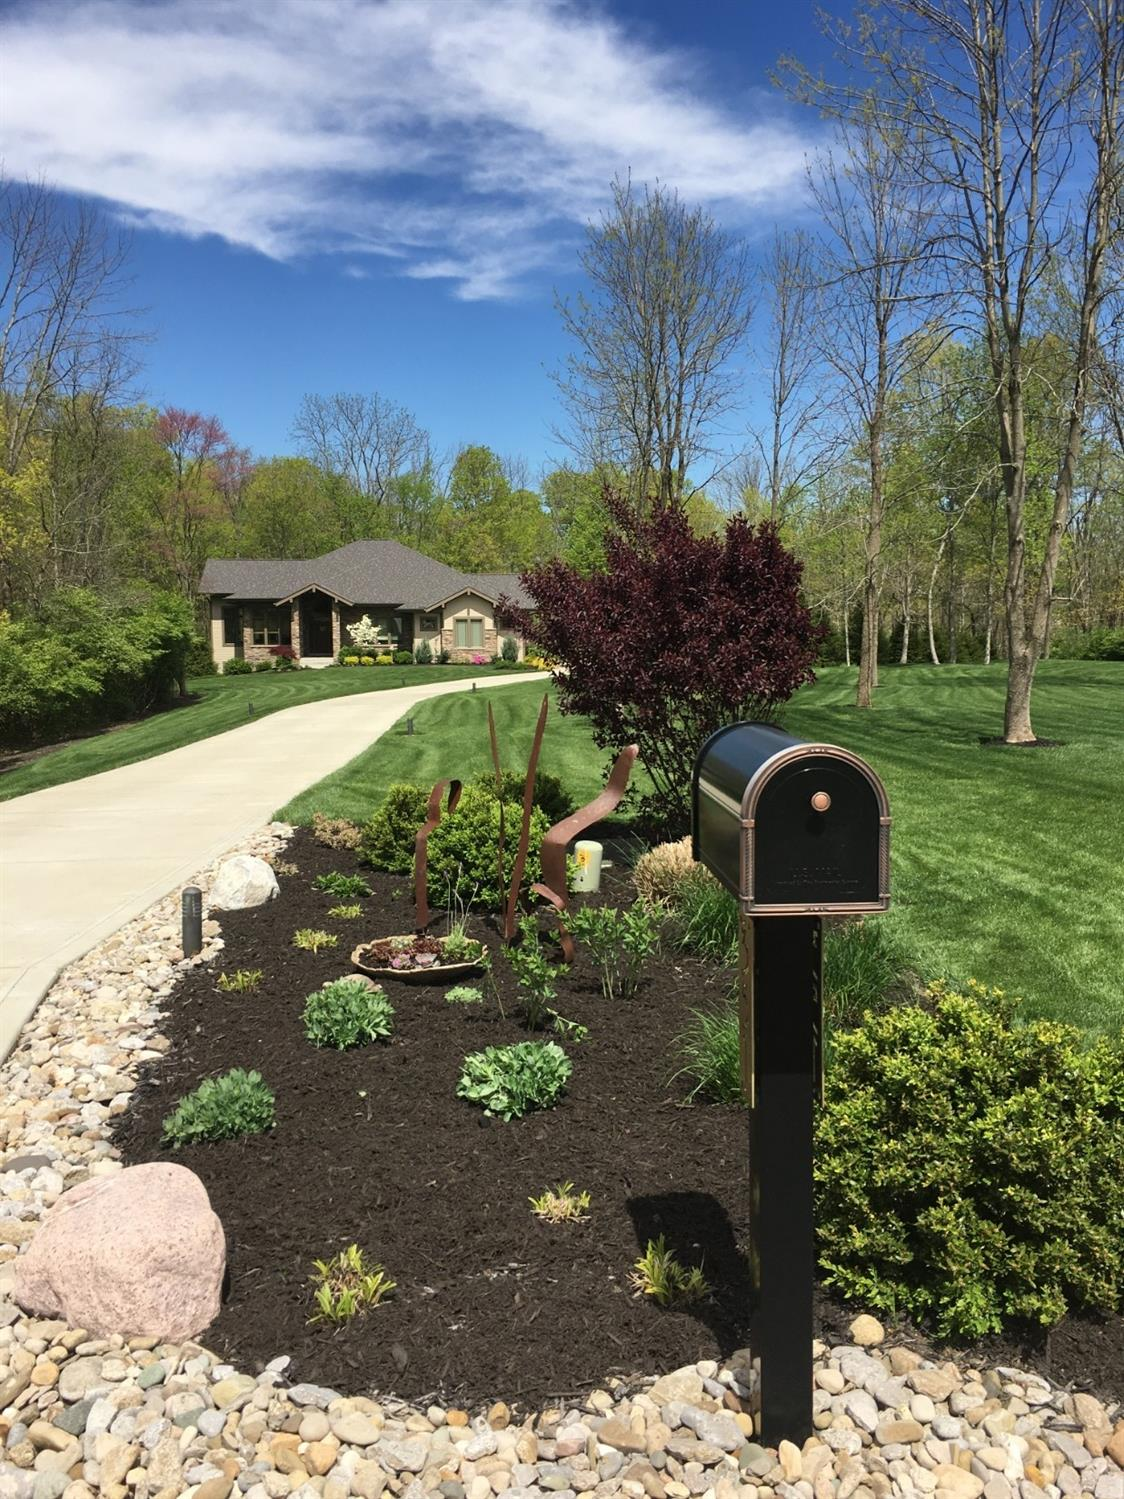 351 Aspen Ridge Dr Turtle Creek Twp OH